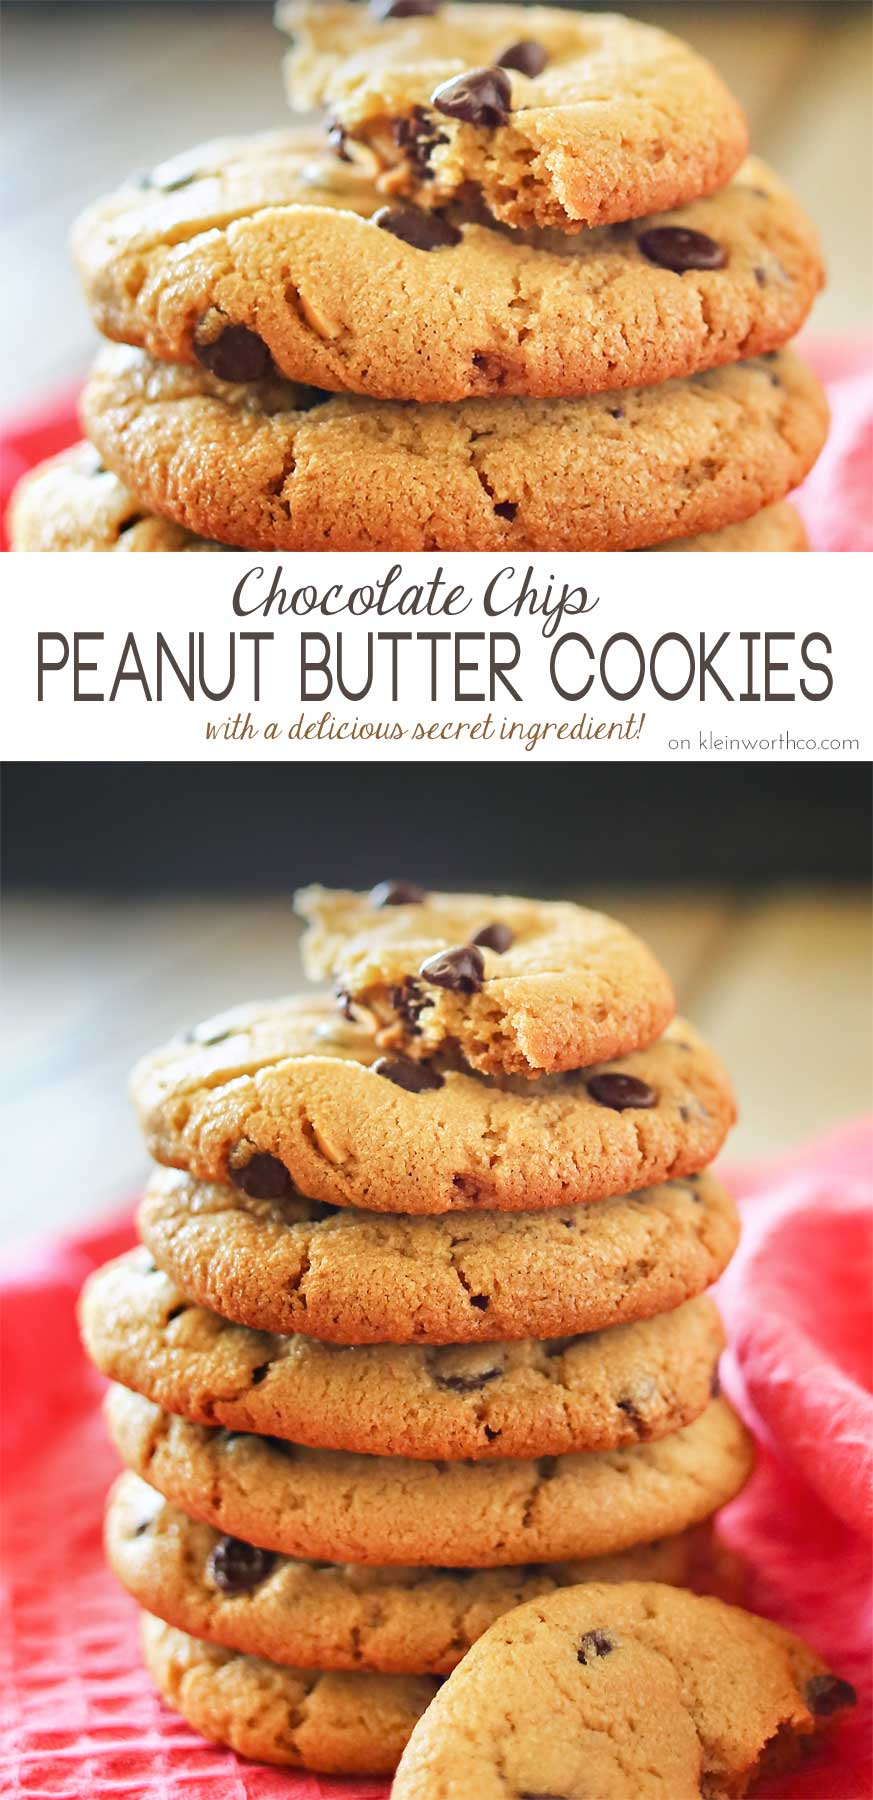 Chocolate Chip Peanut Butter Cookies are crisp outside, soft inside. There's also a secret ingredient that makes them the BEST peanut butter cookies ever! Oh & the fact that they are loaded with mini chocolate chips doesn't hurt either!